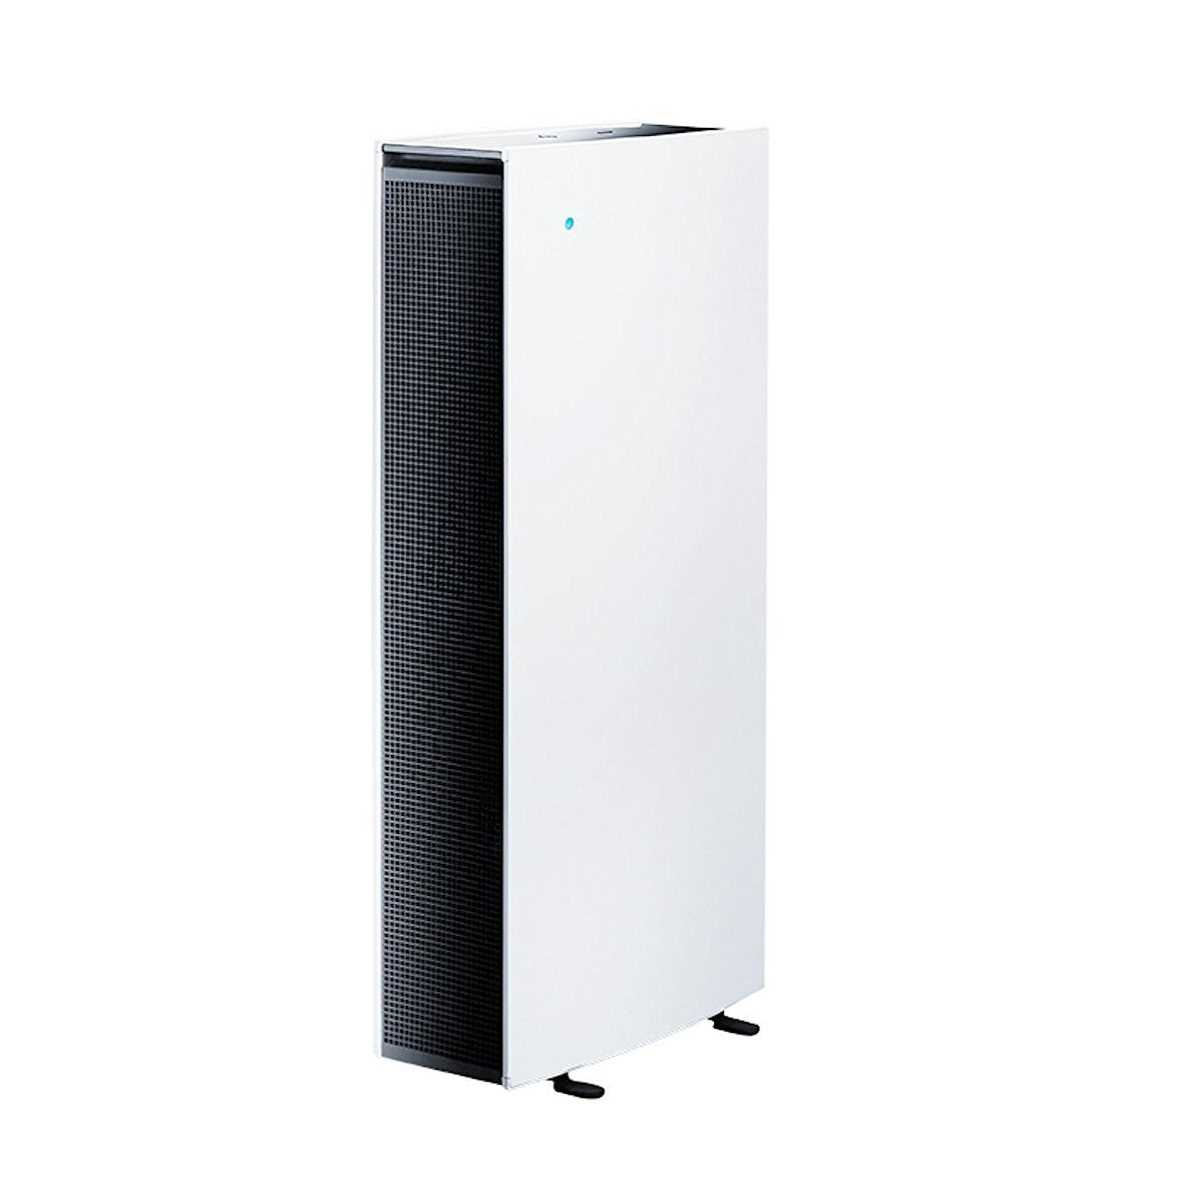 Blueair Pro XL Hepasilent Room Air Purifier